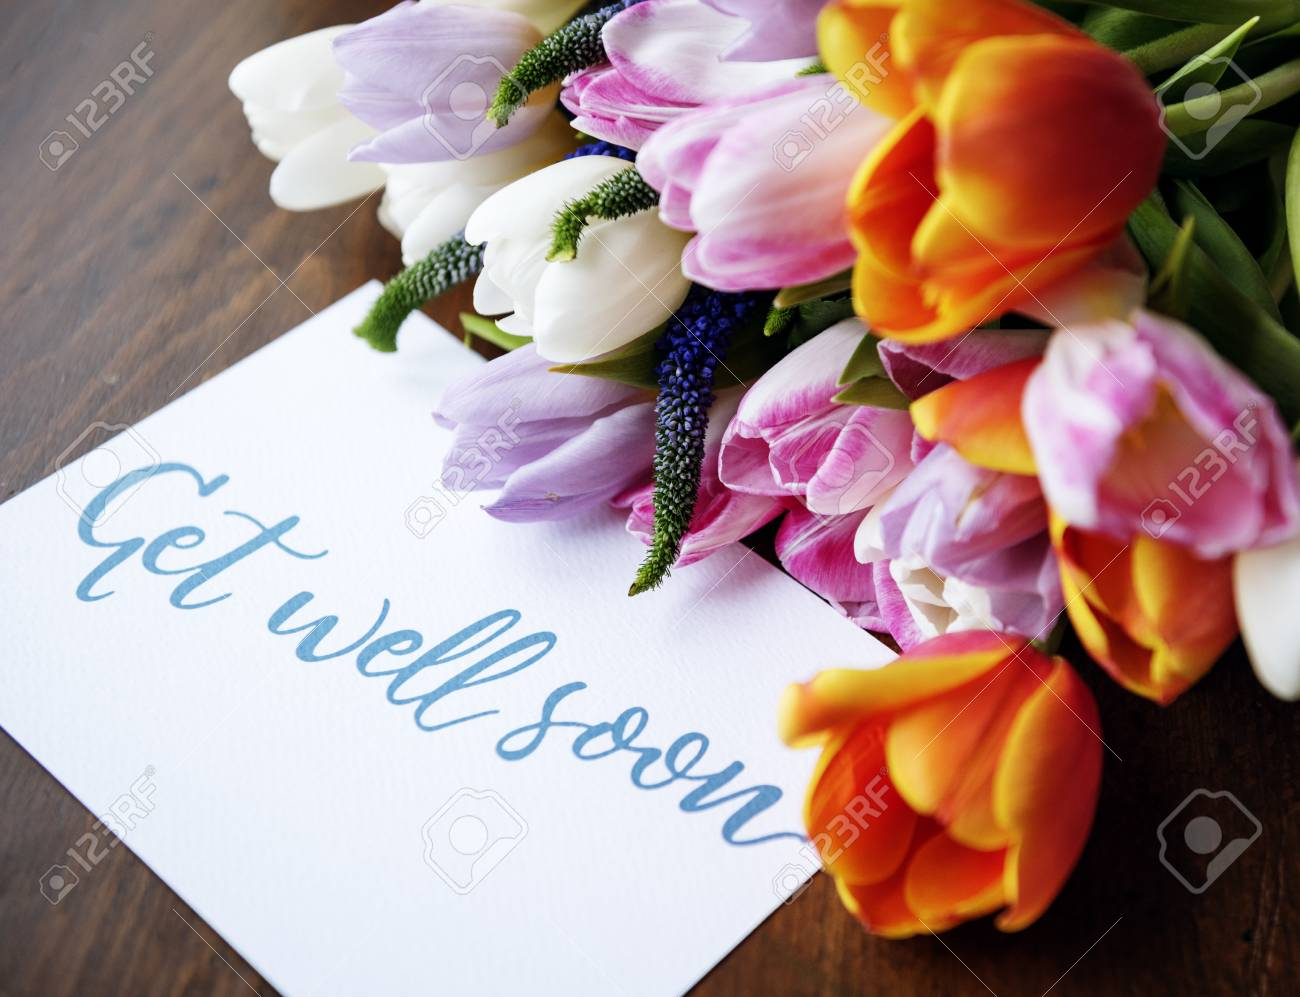 Tulips Flowers Bouquet With Get Well Soon Wishing Card Stock Photo Picture And Royalty Free Image Image 79641036